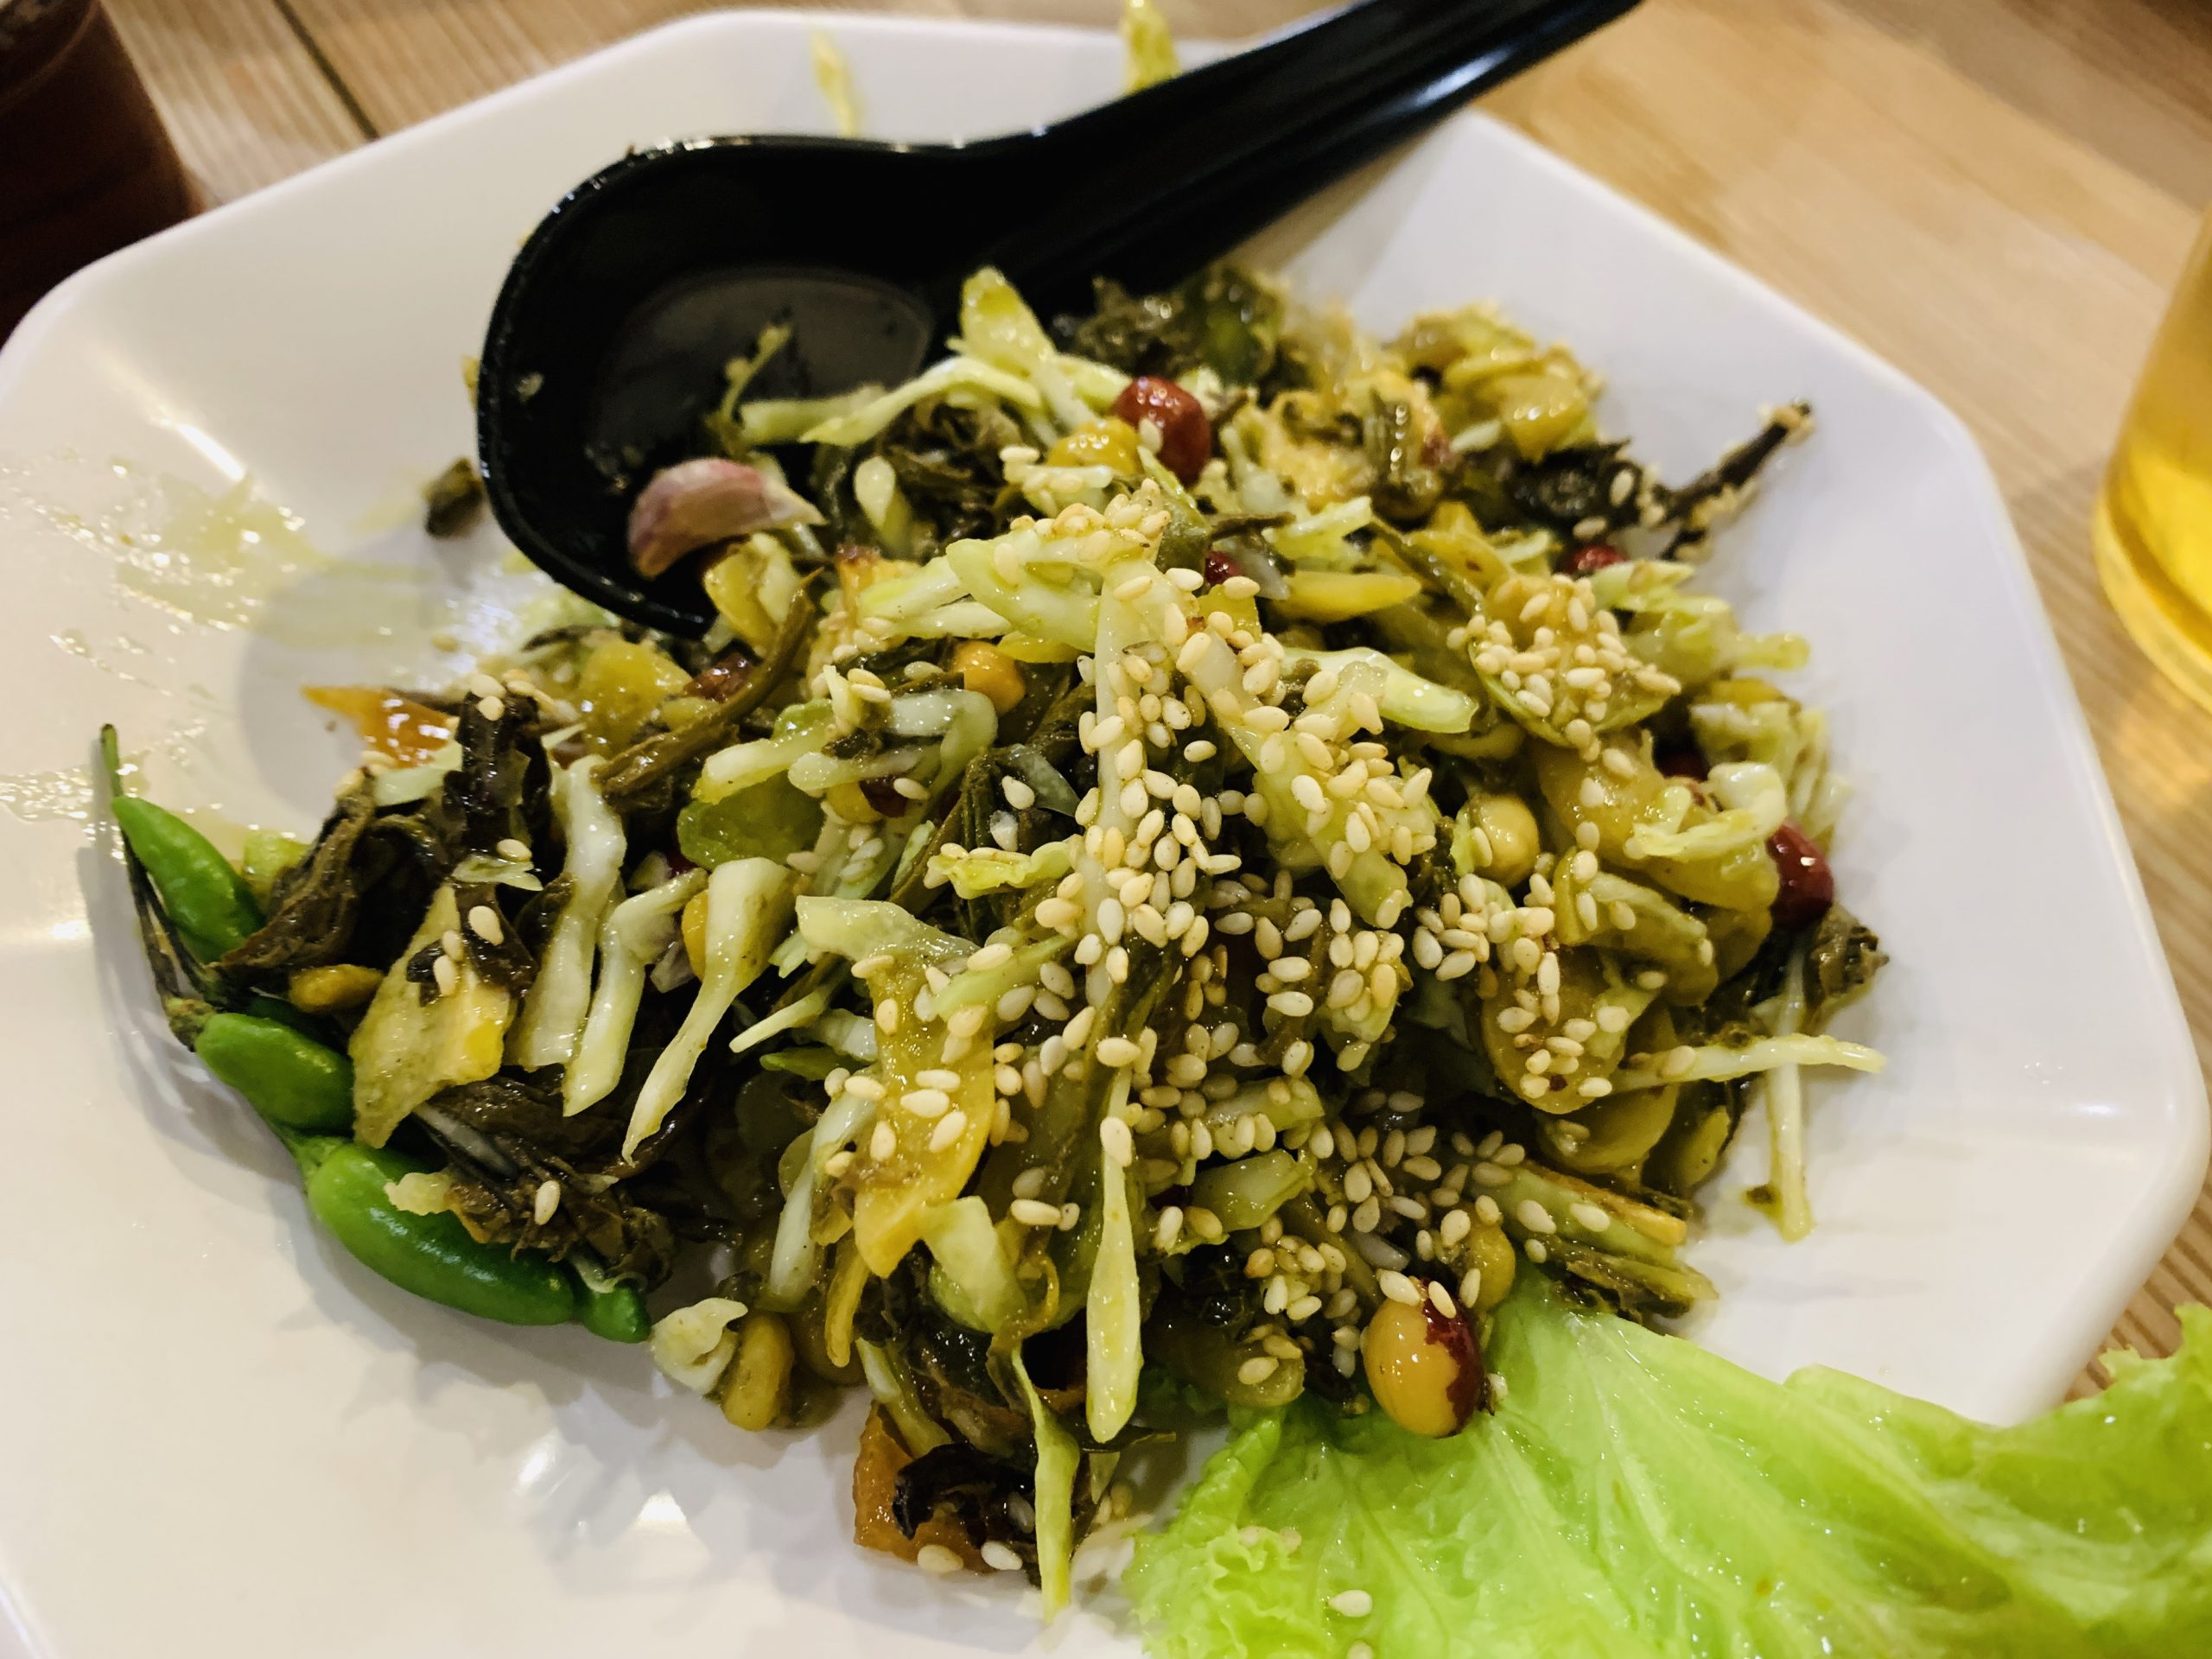 Inle Myanmar Restaurant - Piclked Tea Leave Salad